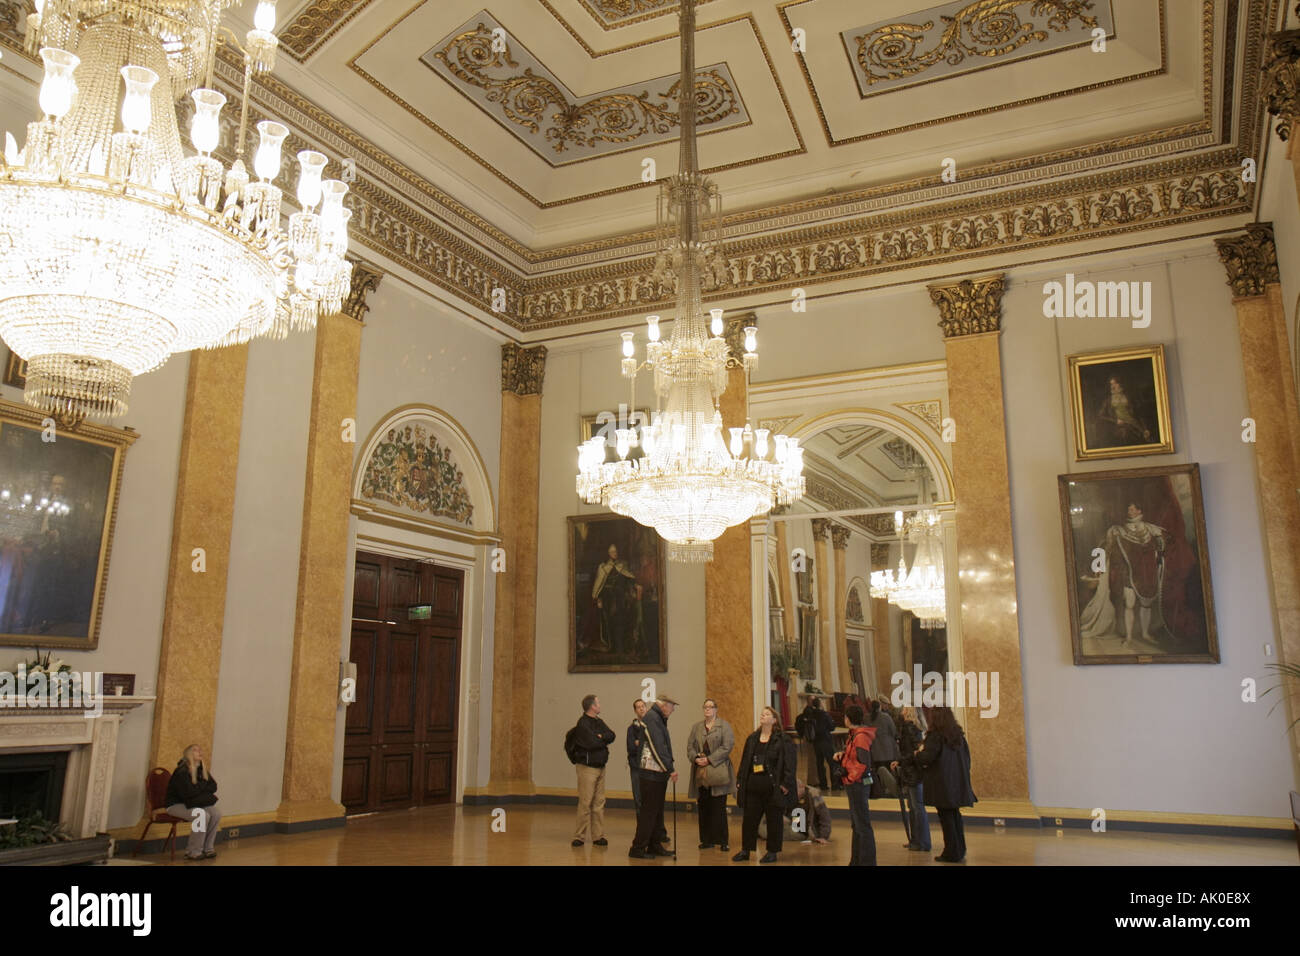 England uk liverpool high street town hall 1802 ballroom england uk liverpool high street town hall 1802 ballroom chandelier tour group mozeypictures Gallery